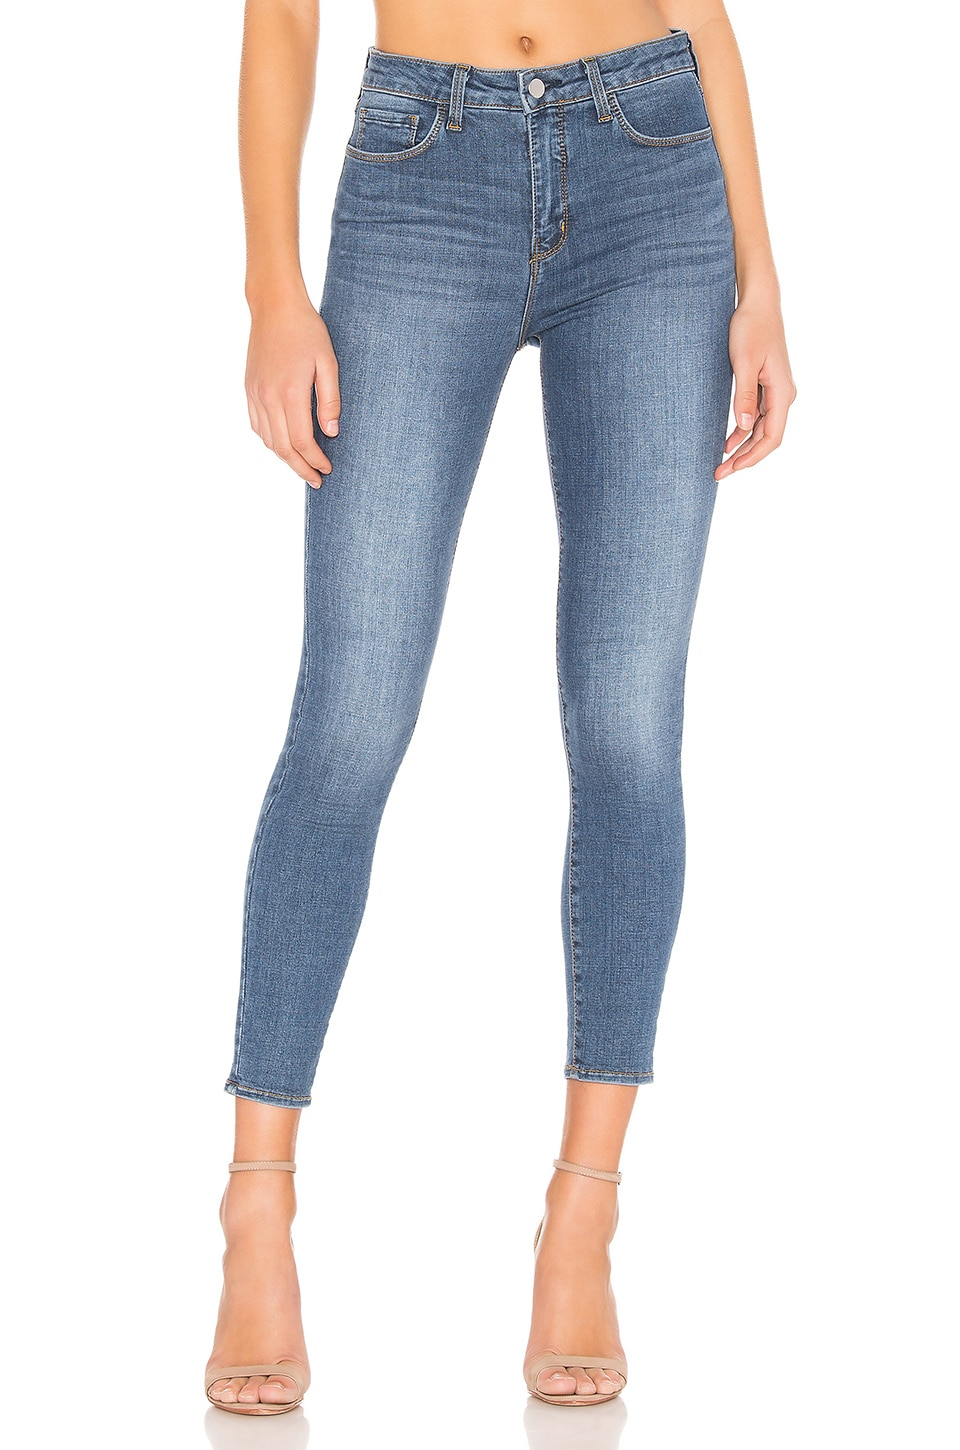 L'AGENCE Margot High Rise Skinny Jean in Light Vintage